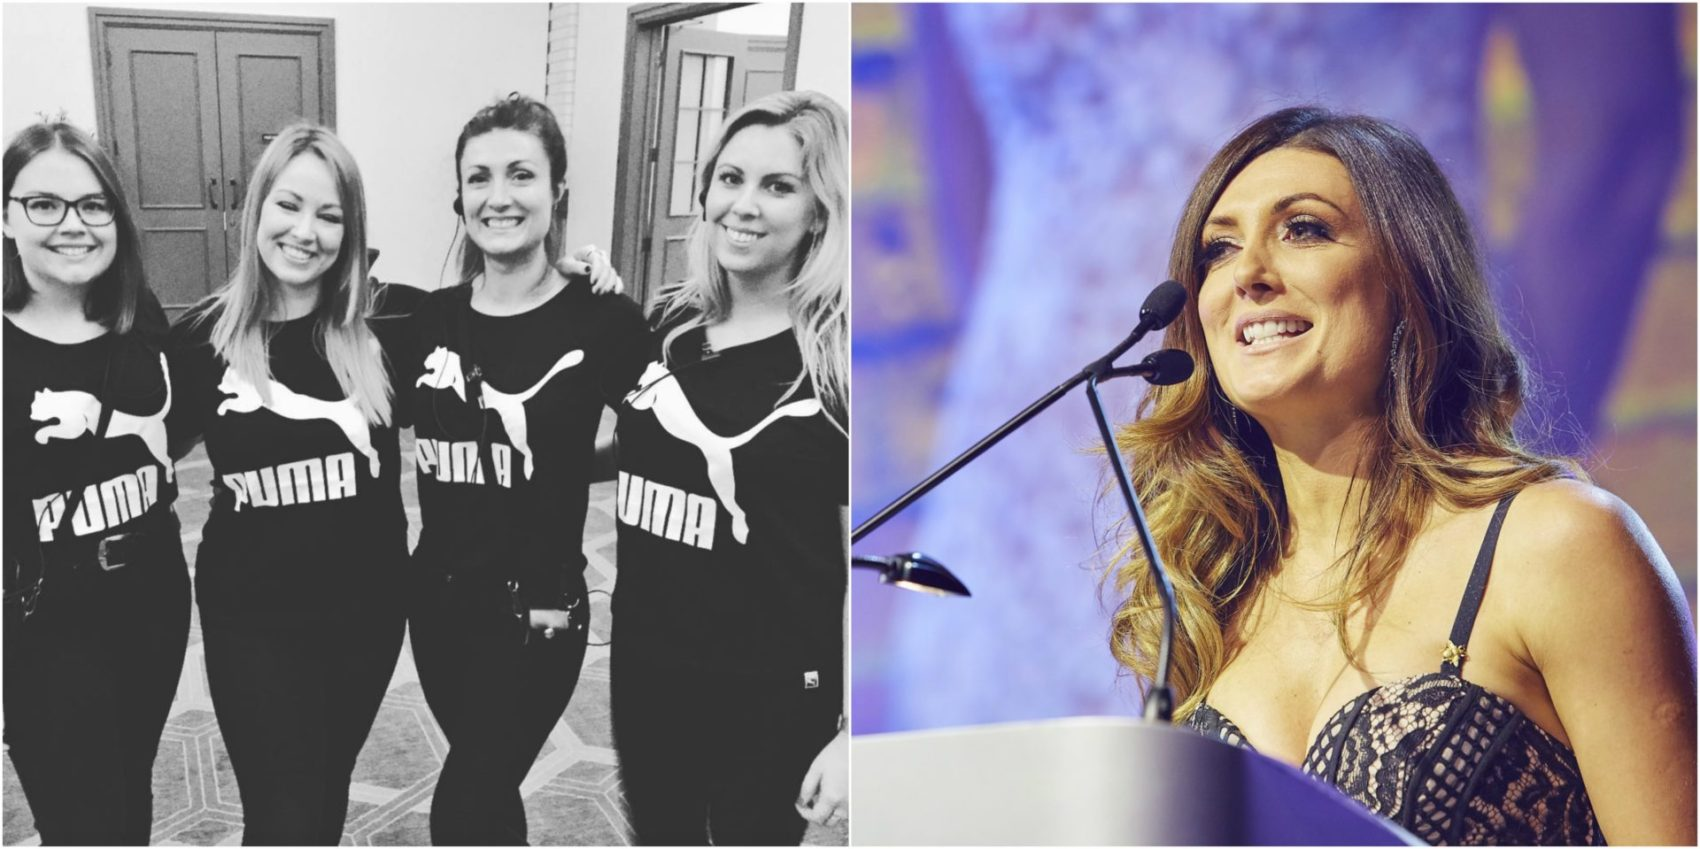 Make Events | Event Management Company Manchester | Holly Moore